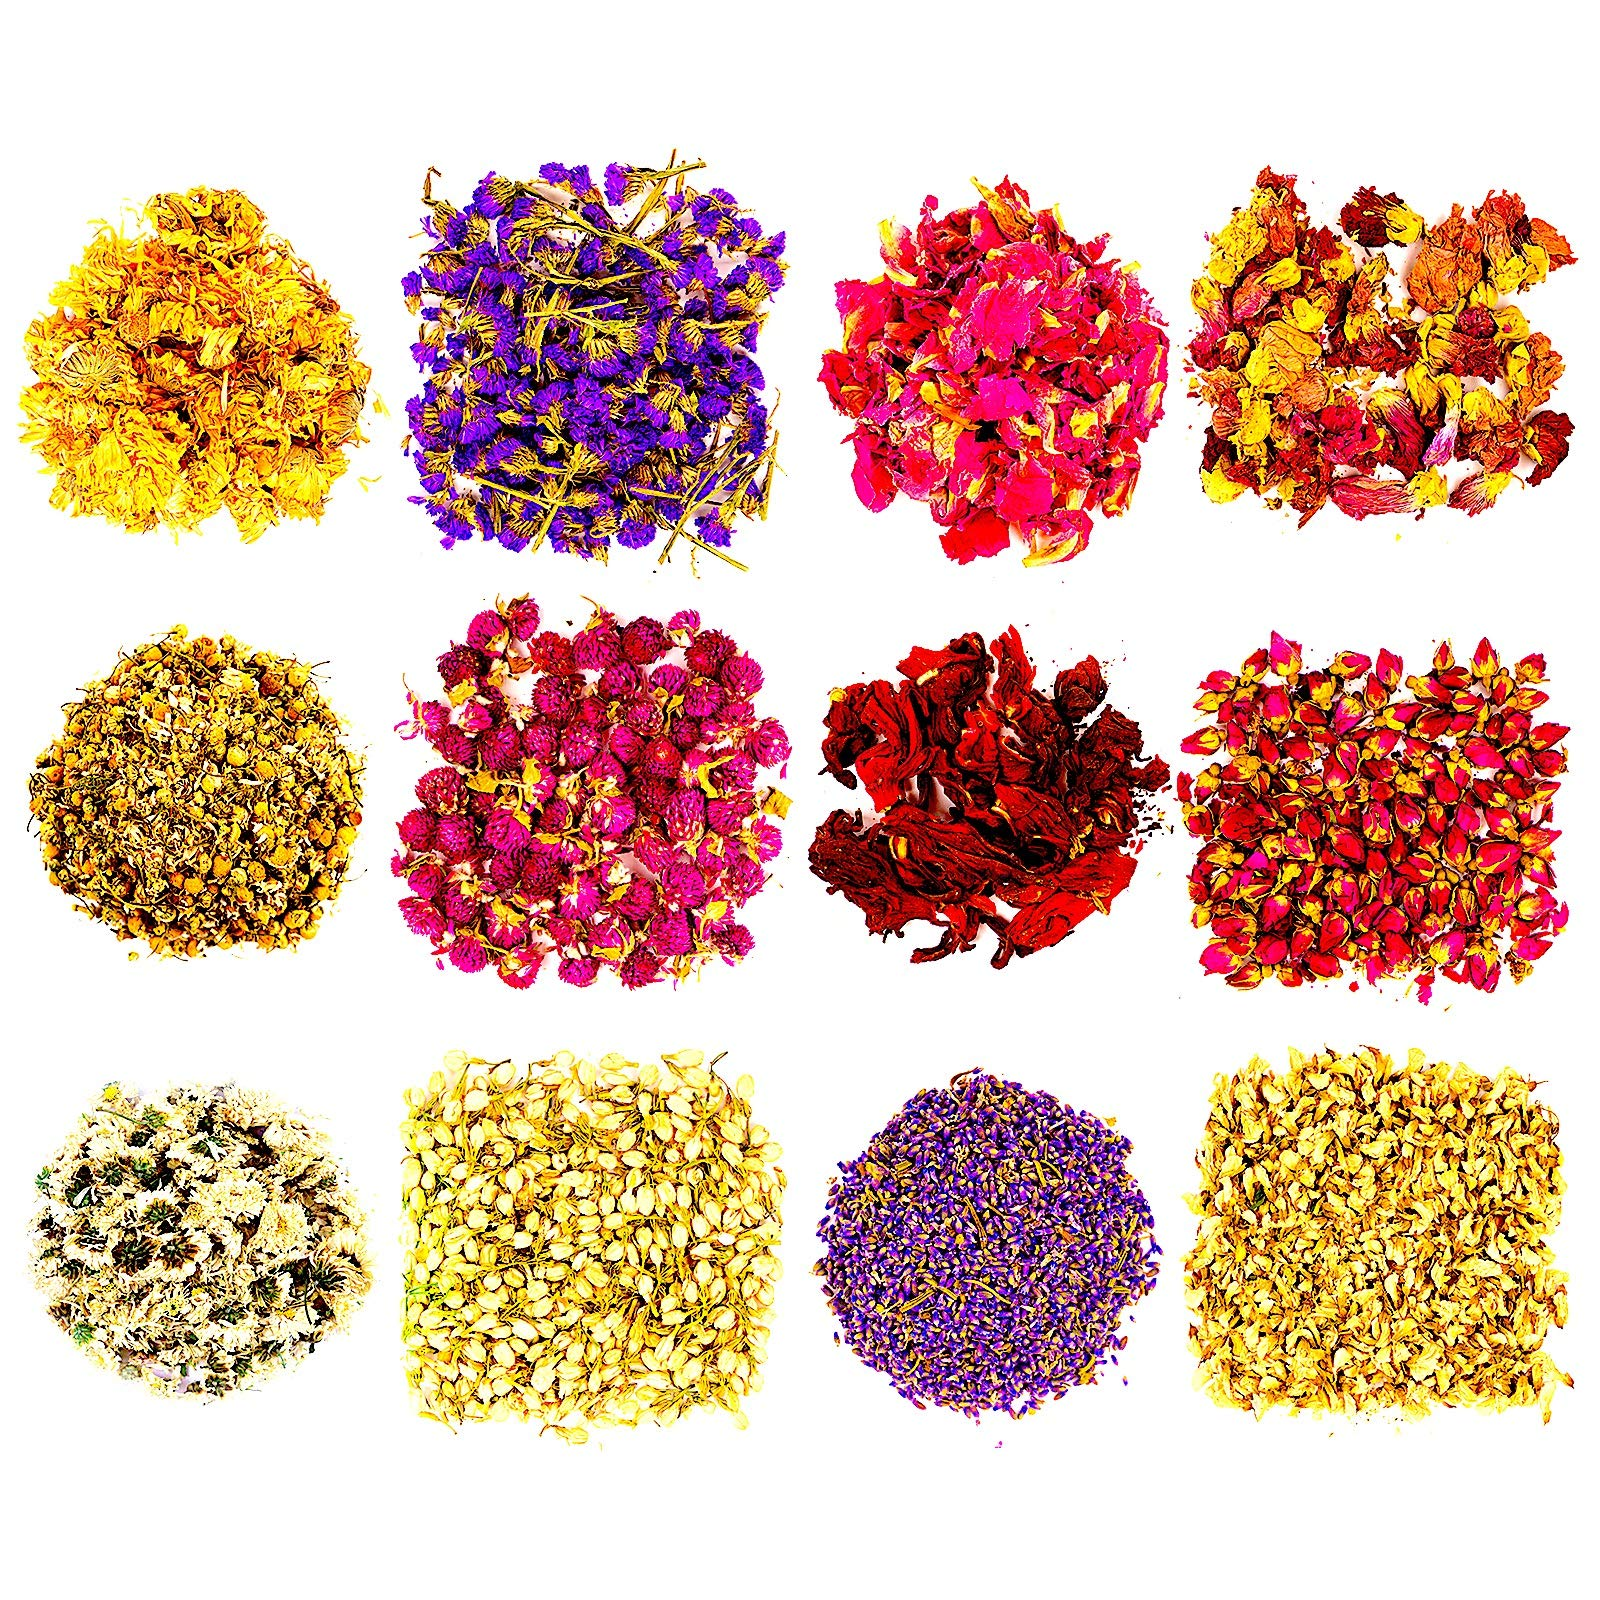 Dried Herbs and Flowers for Soap Making - 12 Mix Pack Flower Arrangements Rose Petals Lavender Jasmine and More - for DIY Crafts Projects Bath Candle Lip Gloss Essential Oils Herbal Witch Decorations